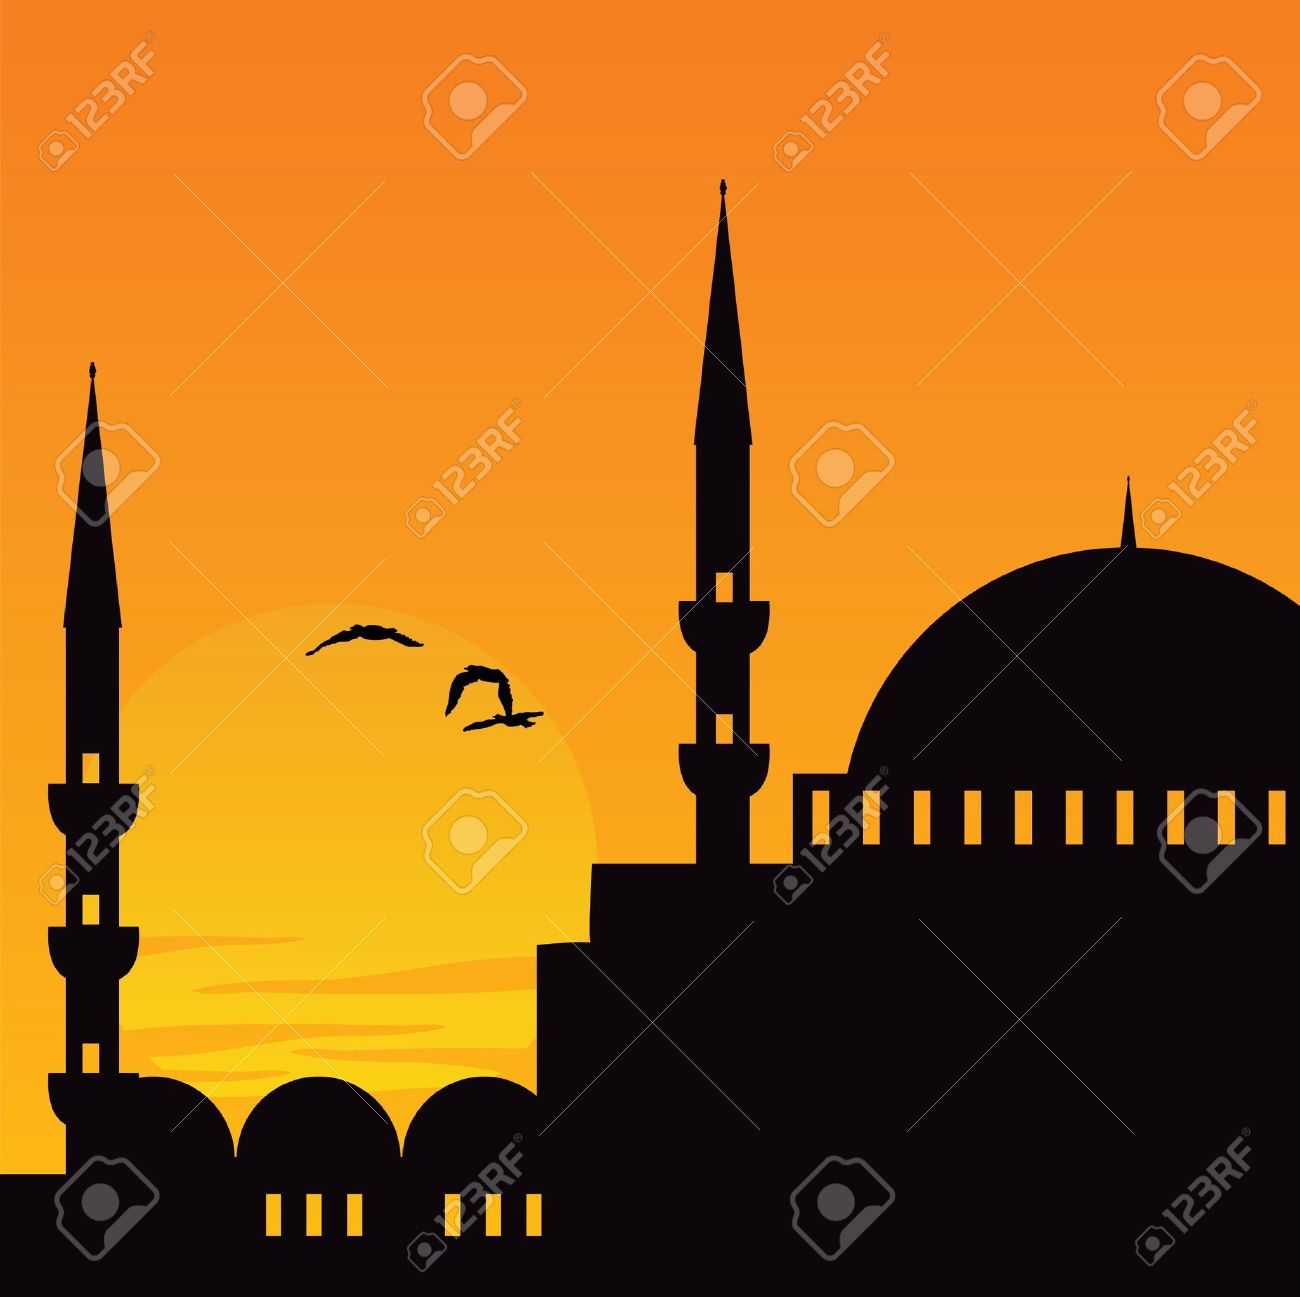 Mosque Royalty Free Cliparts, Vectors, And Stock Illustration.